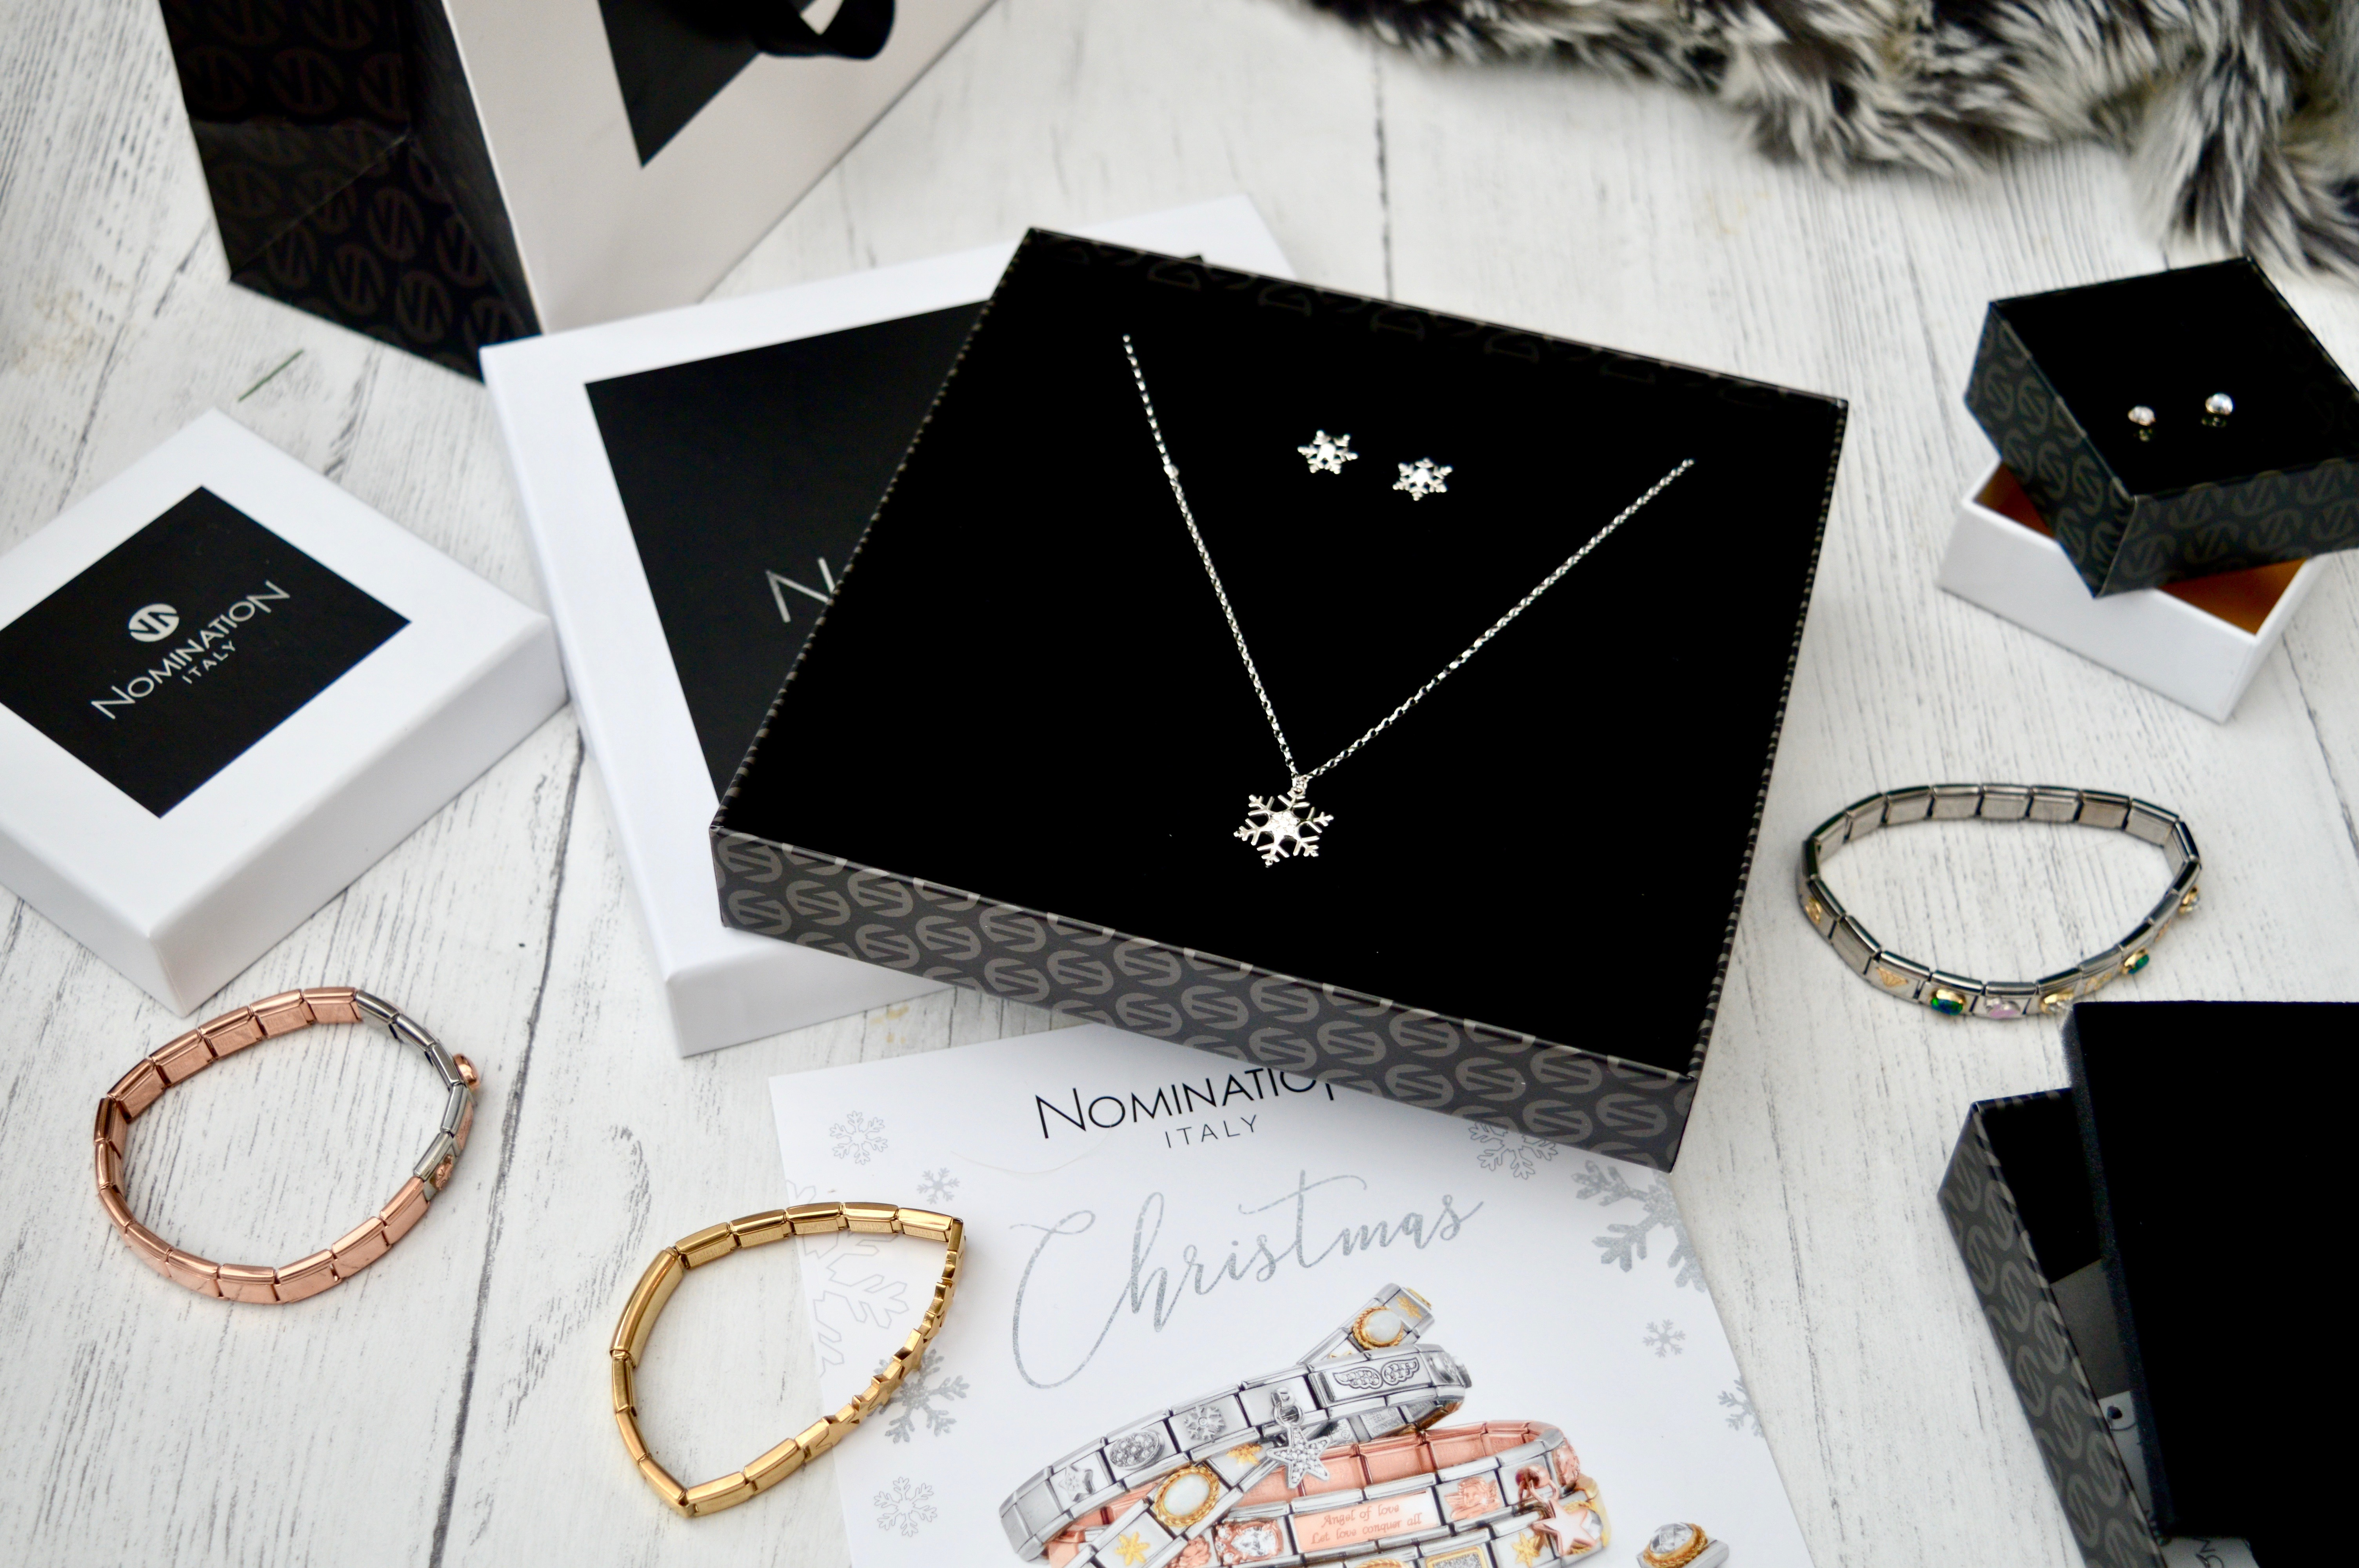 Choosing Personal Christmas Gifts For Her With Nomination 9